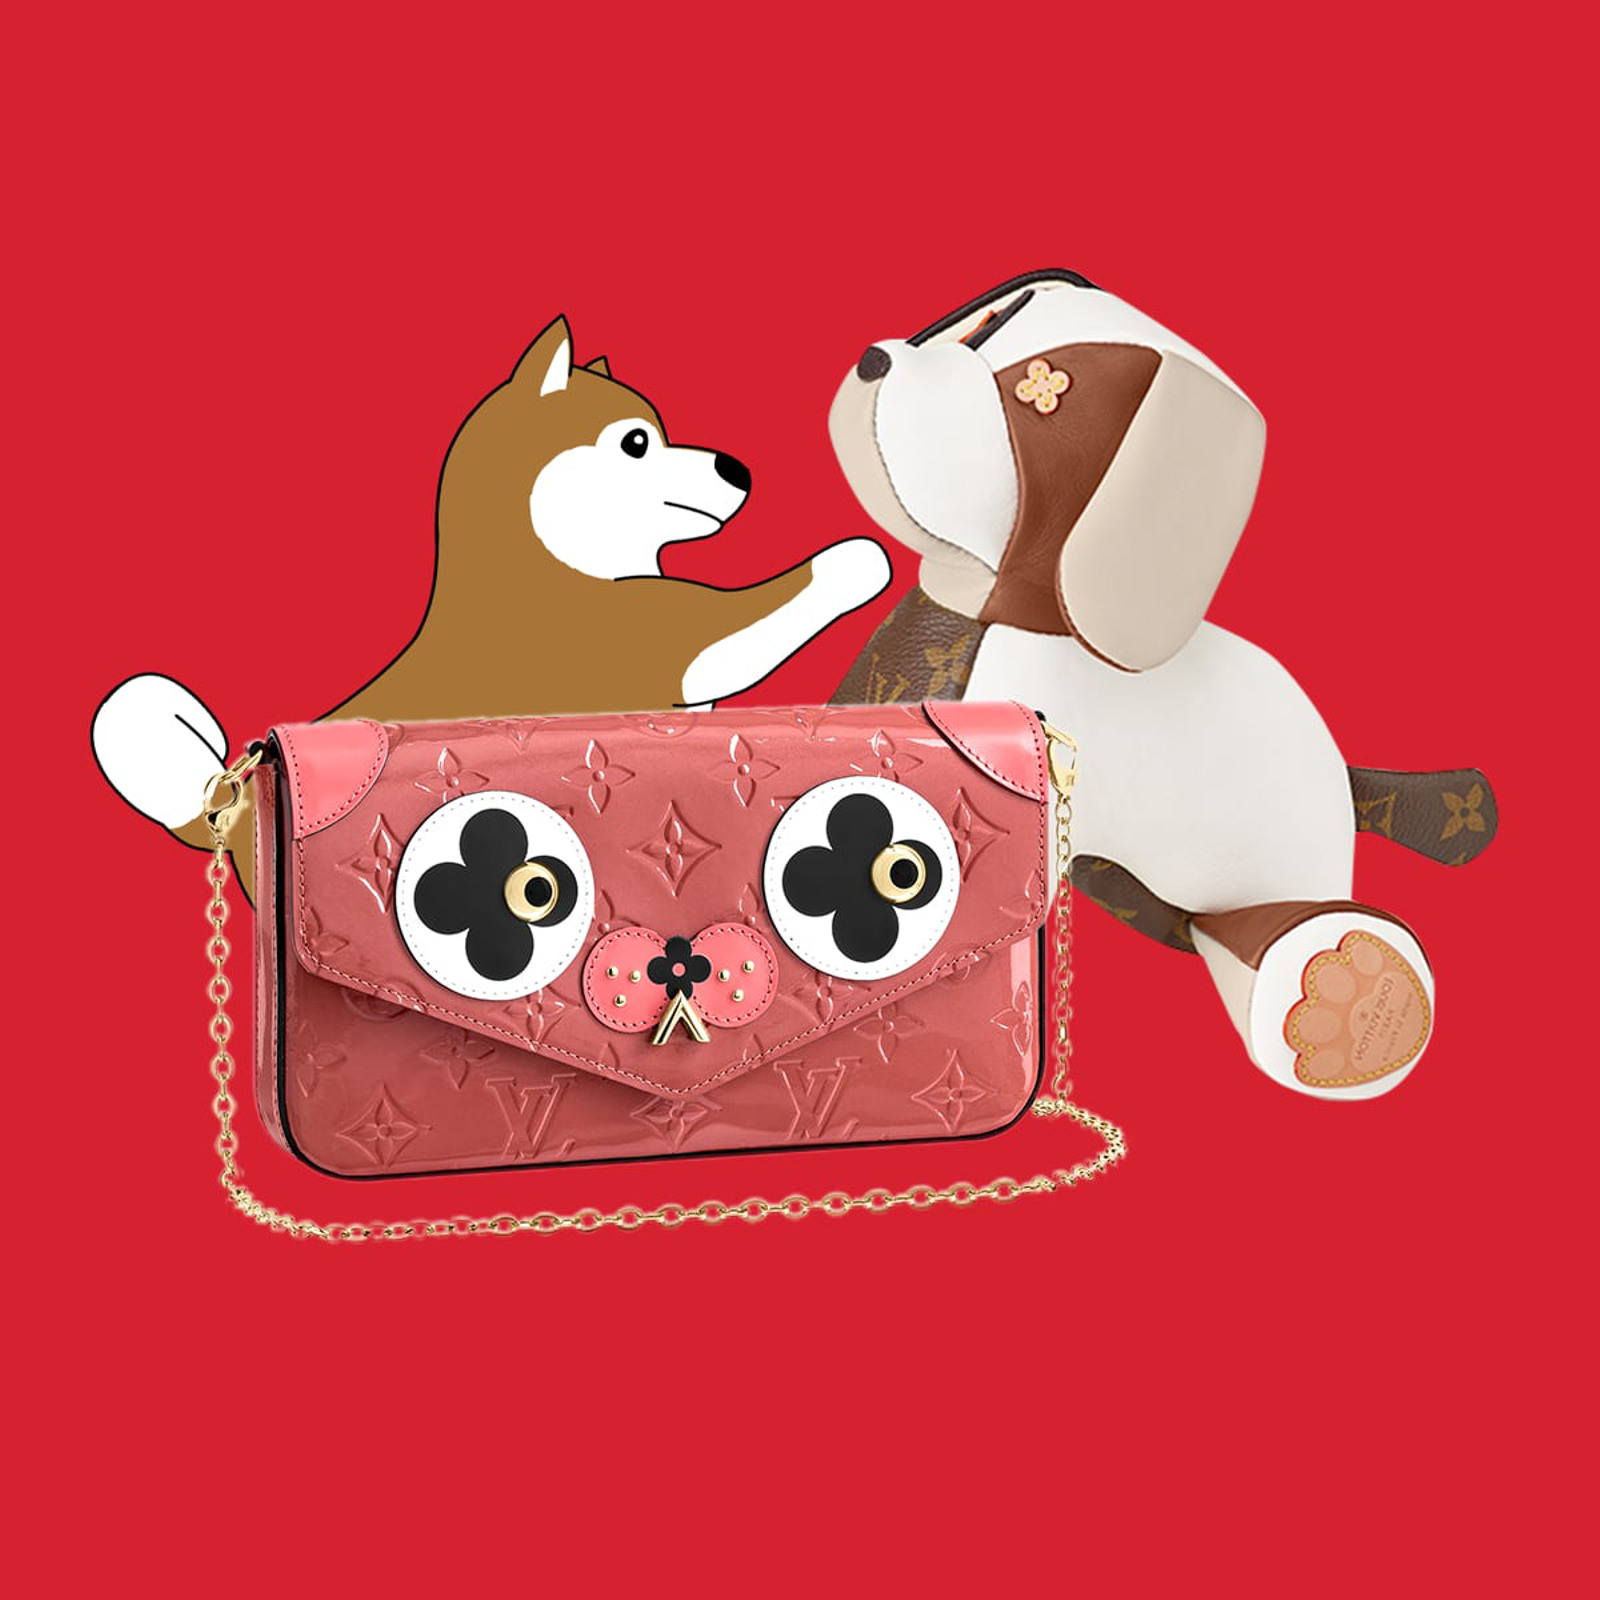 Louis Vuitton Chinese New Year of the Dog Collection.jpg